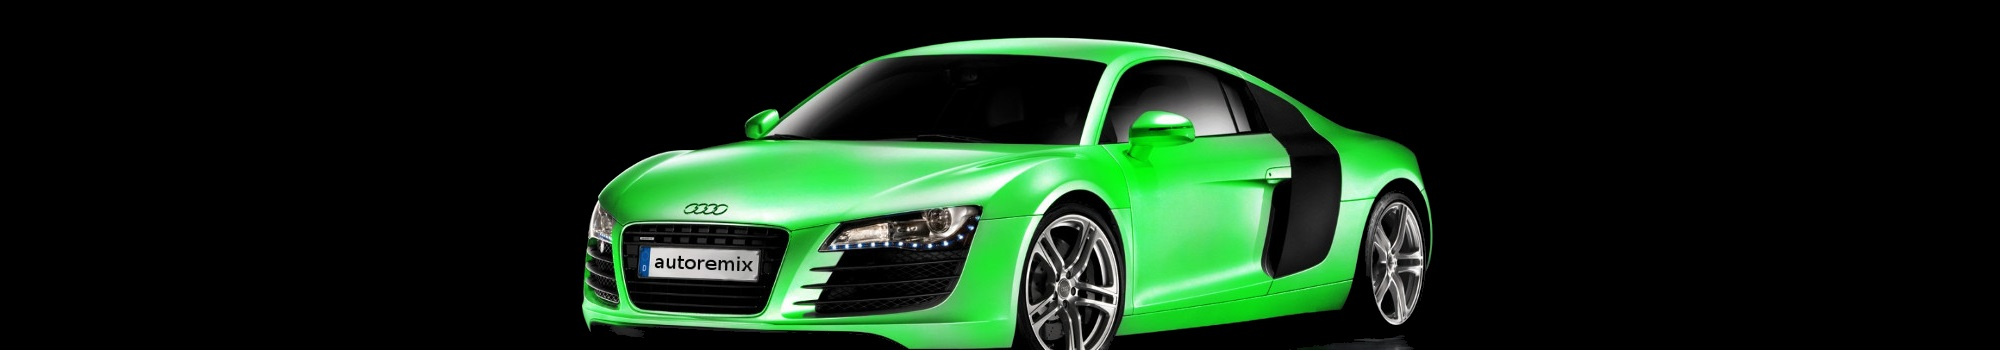 header_audi_greenBanner